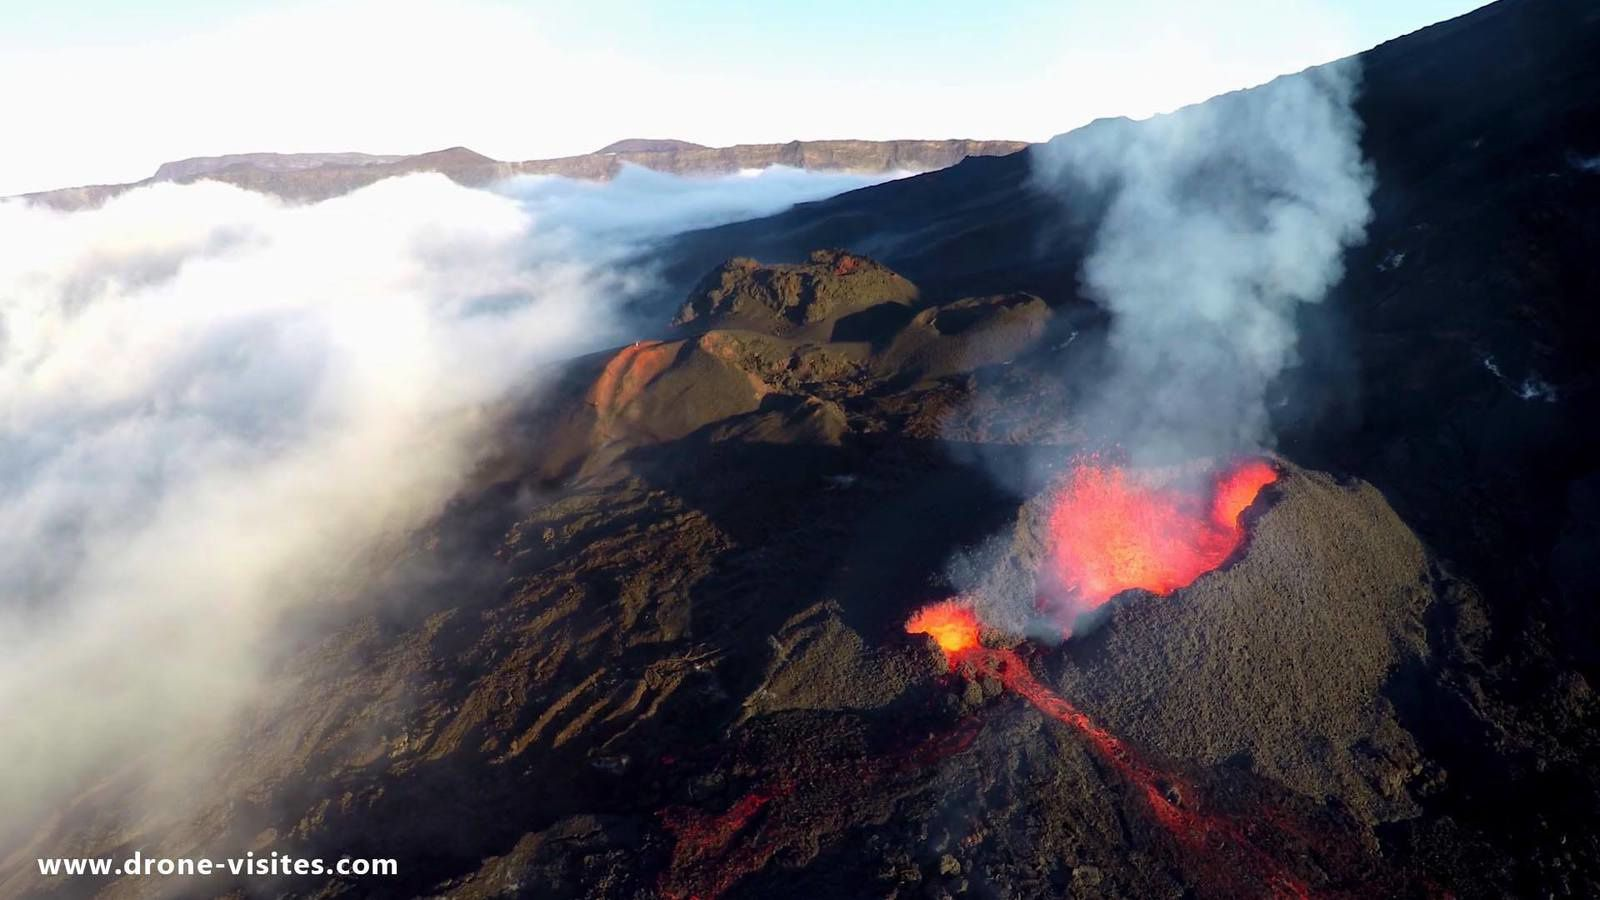 Piton de la Fournaise - the cinder cones - photo Drones Visites